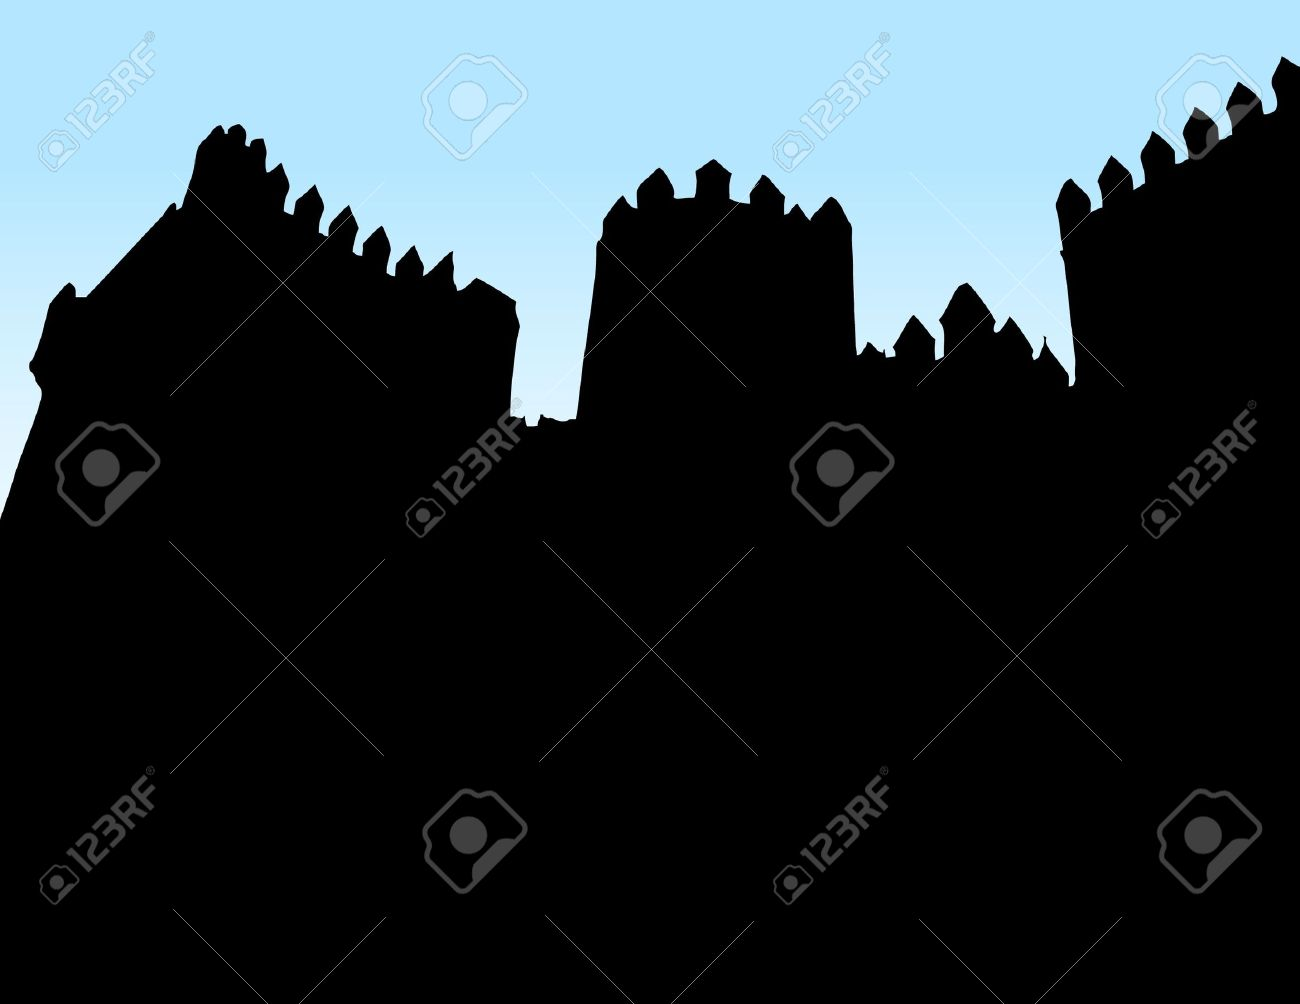 Castle wall silhouette clipart.